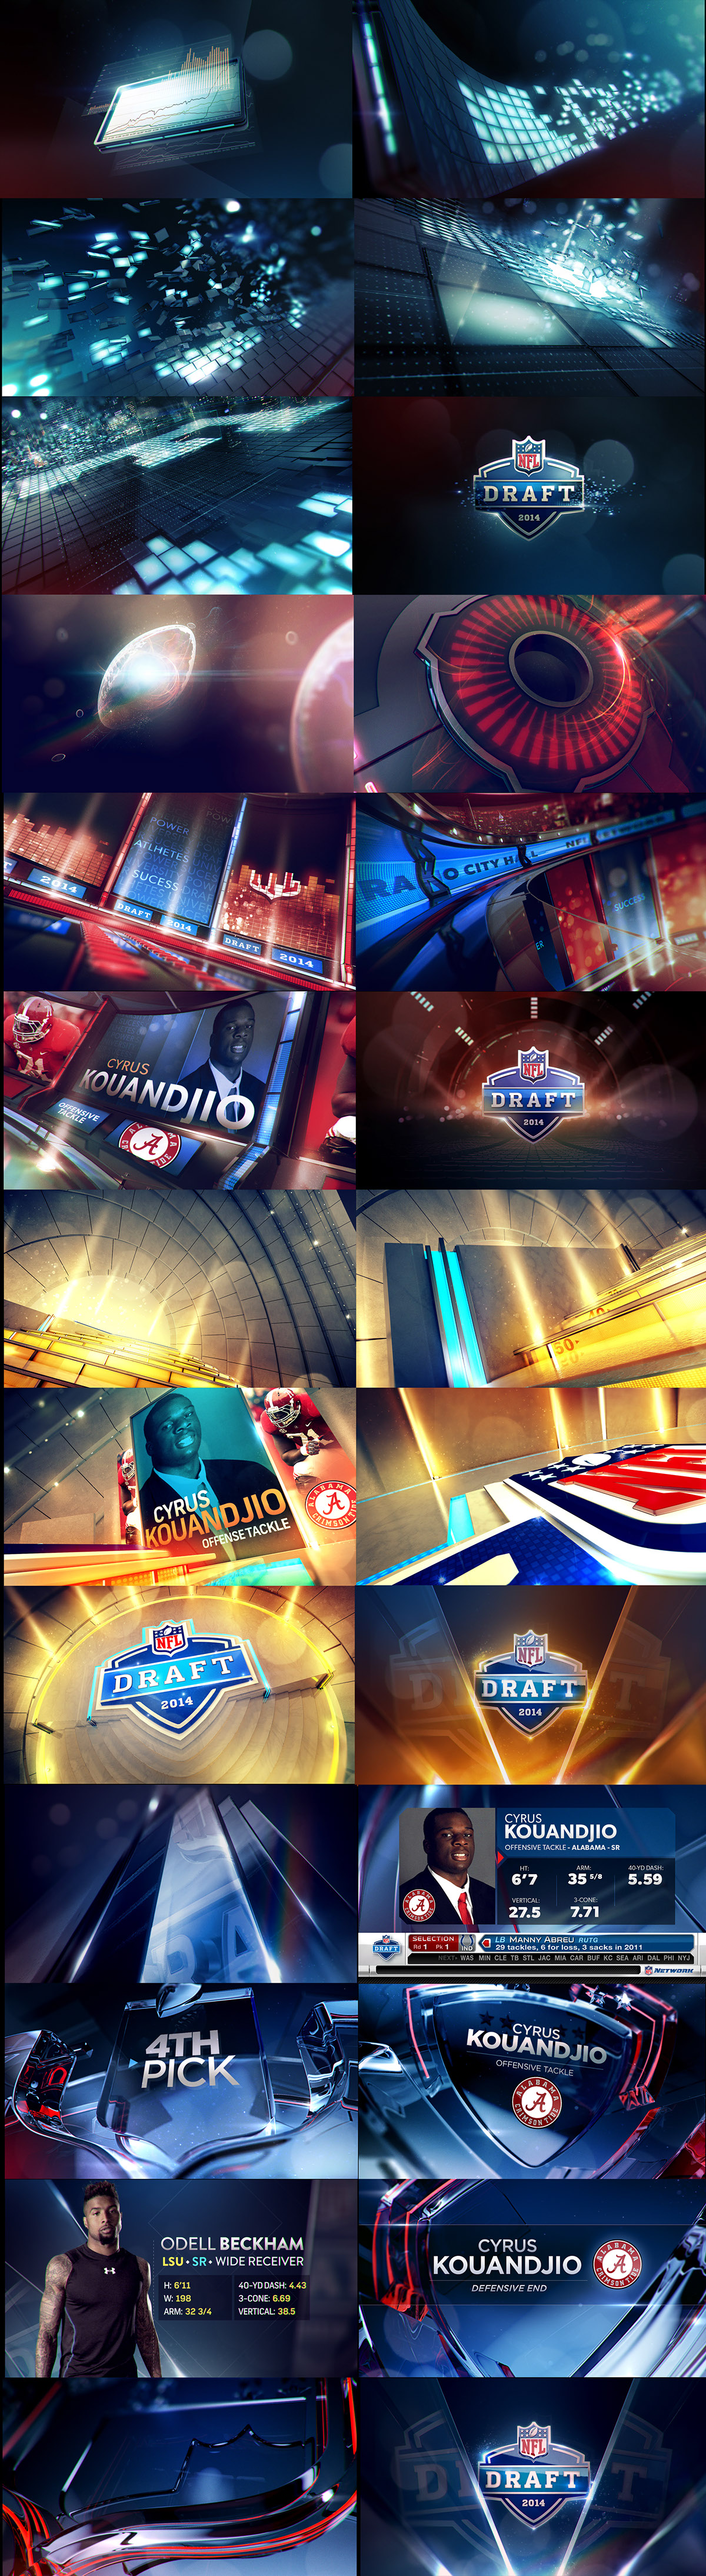 NFL DRAFT_ 2014_ CONCEPTS on Behance Motion graphics